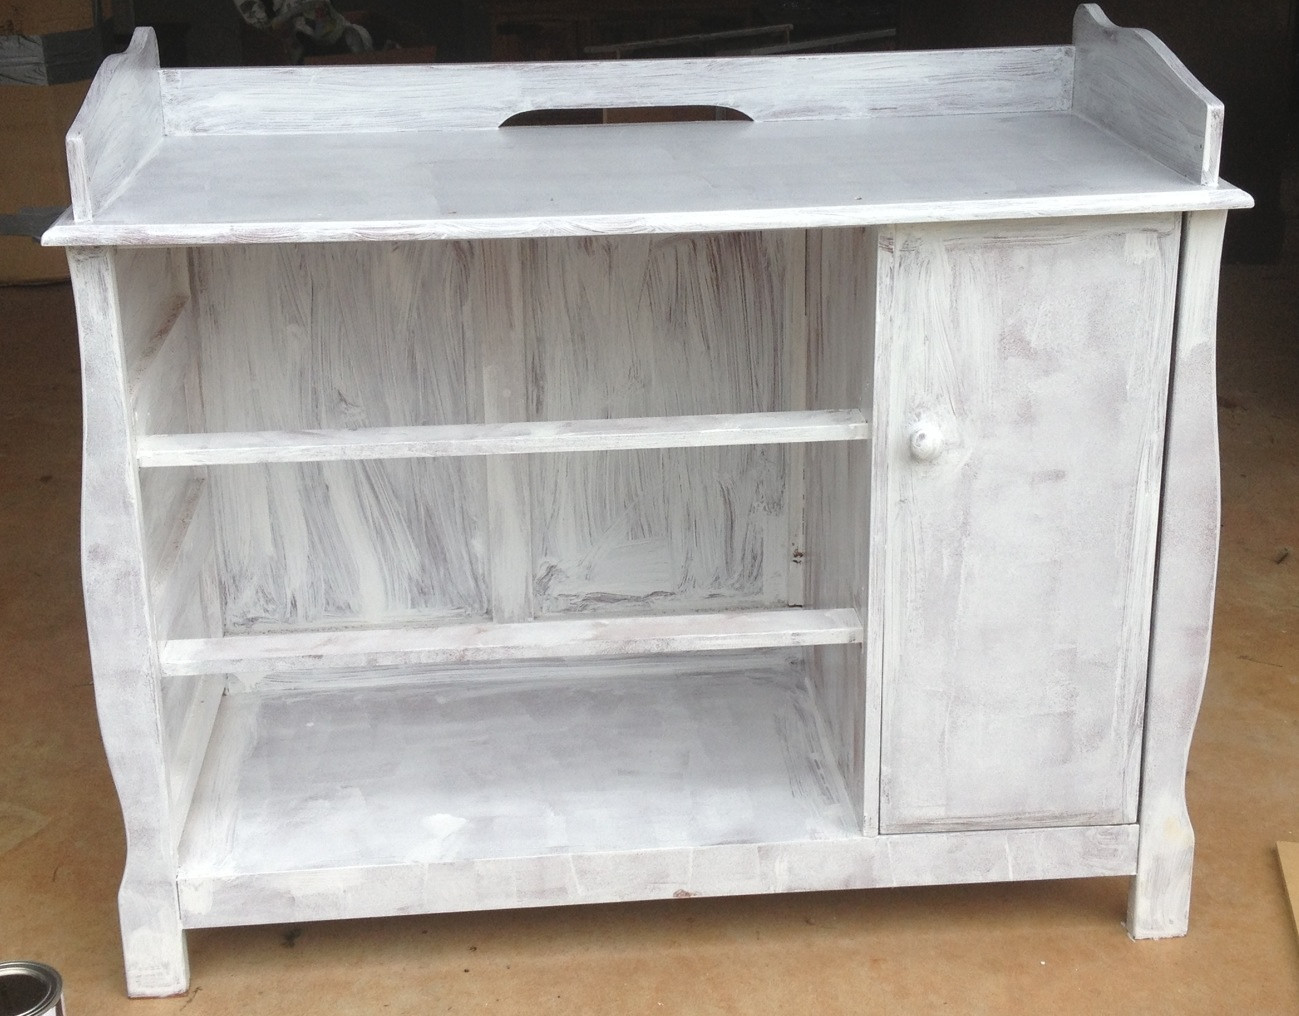 Best ideas about DIY Baby Changing Table . Save or Pin DIY Bar from Baby Changing Table Now.